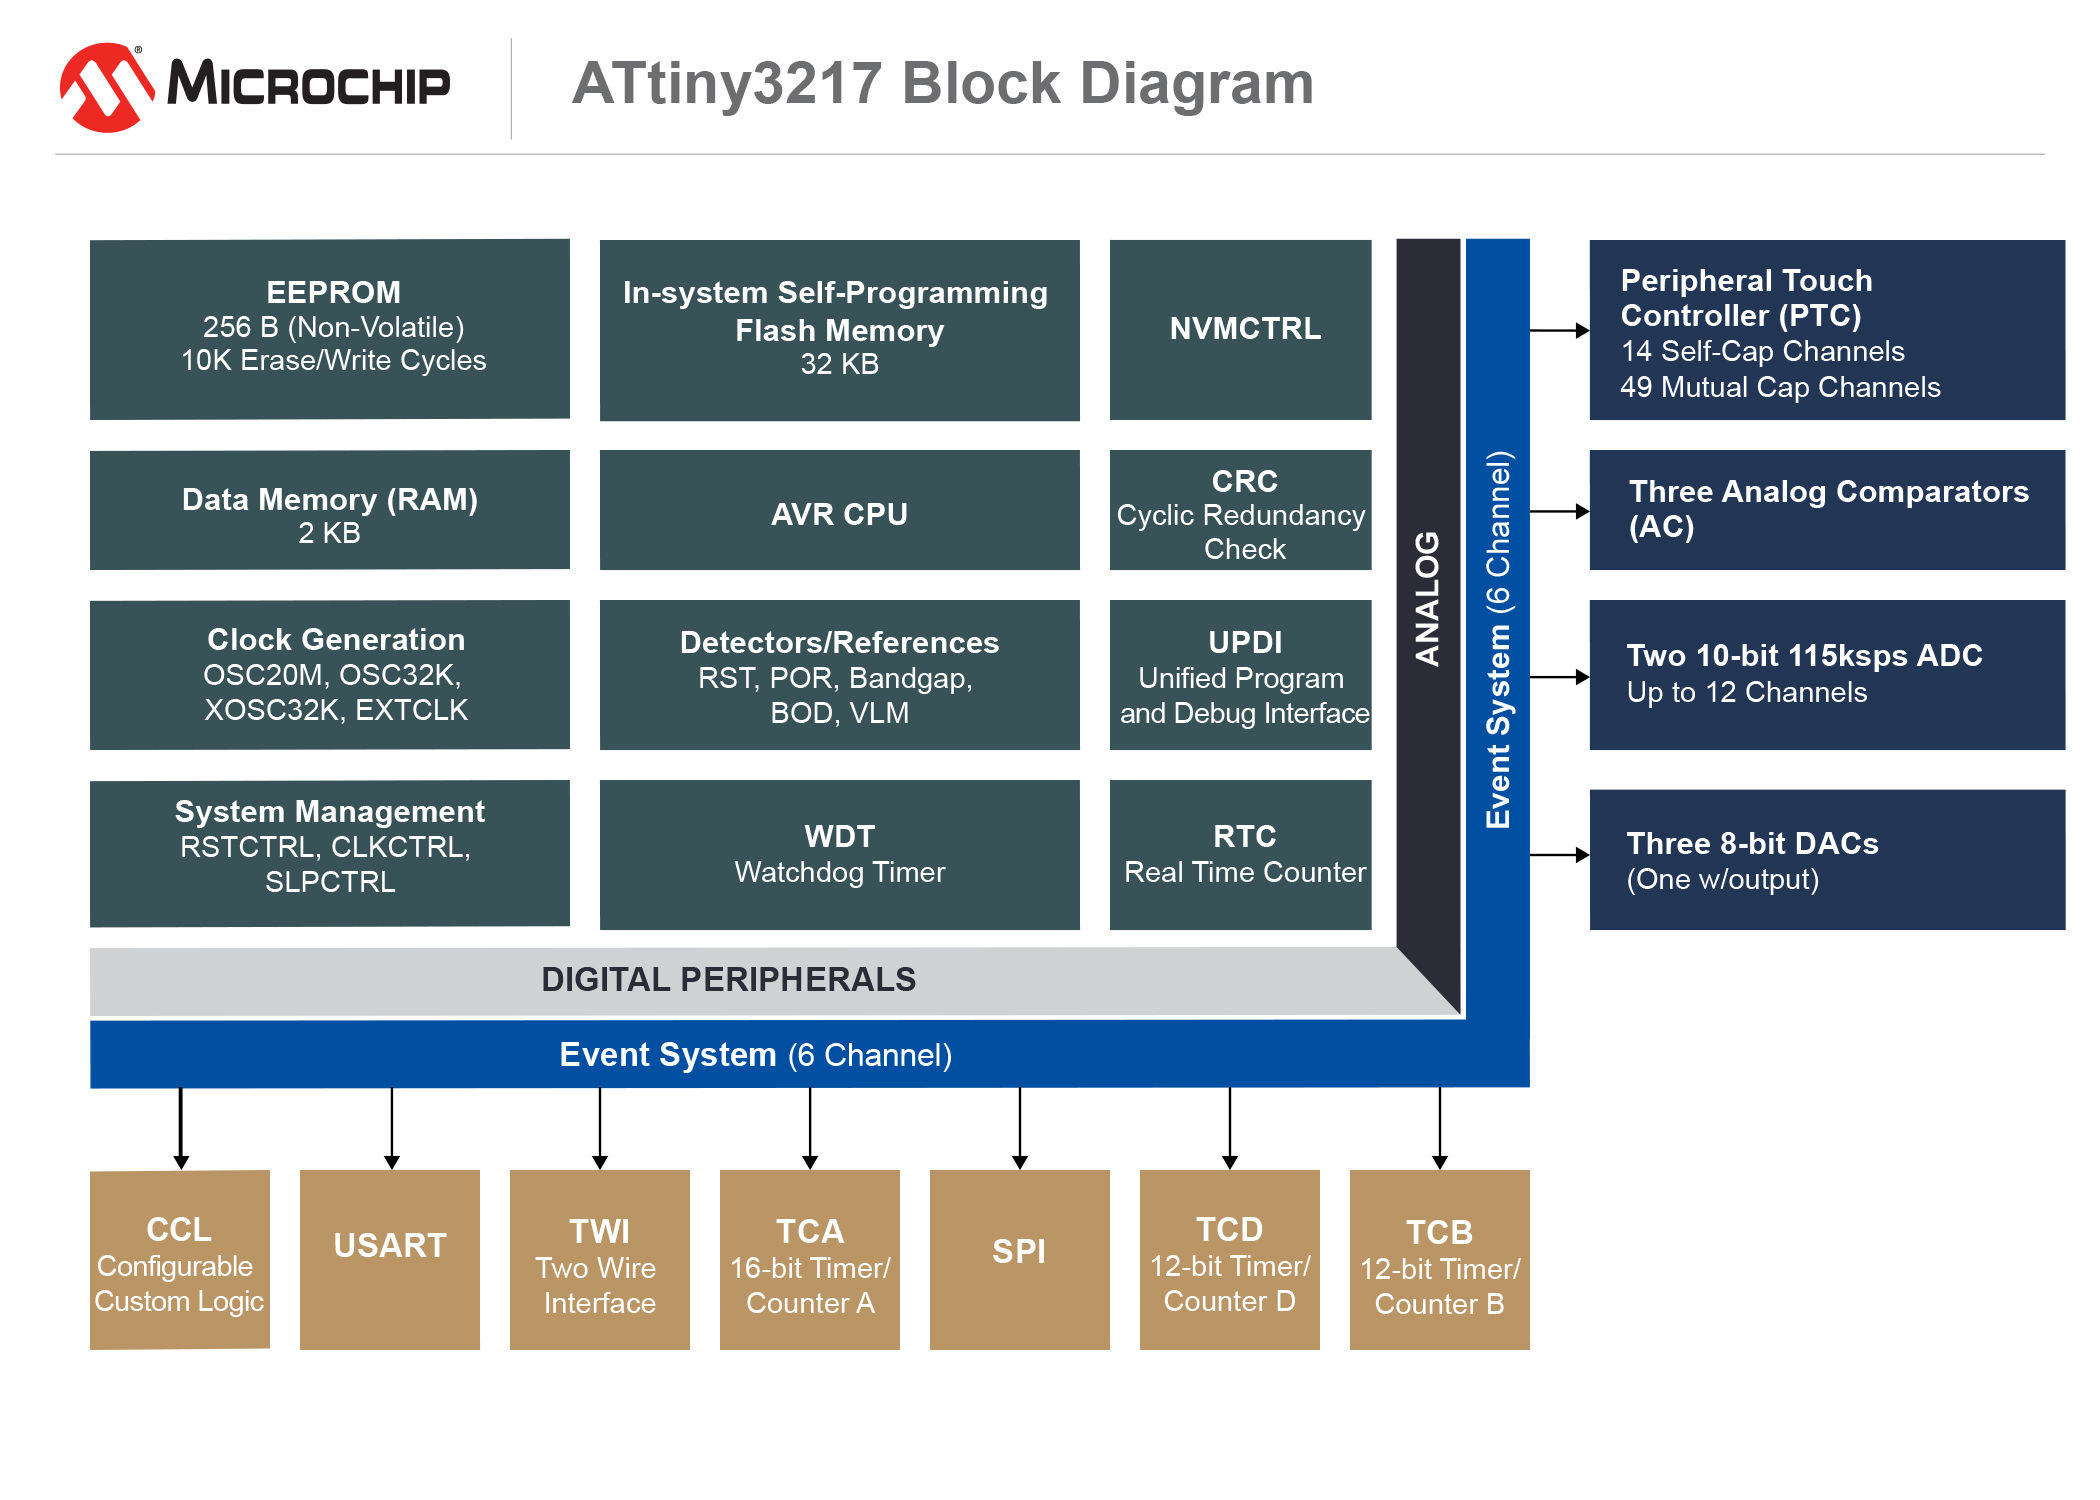 Increase System Performance In Closed Loop Control Applications Analog To Digital Converter Using Pic16f877a Microcontroller 180514 Mcu8 Diag Tiny3217 7x5